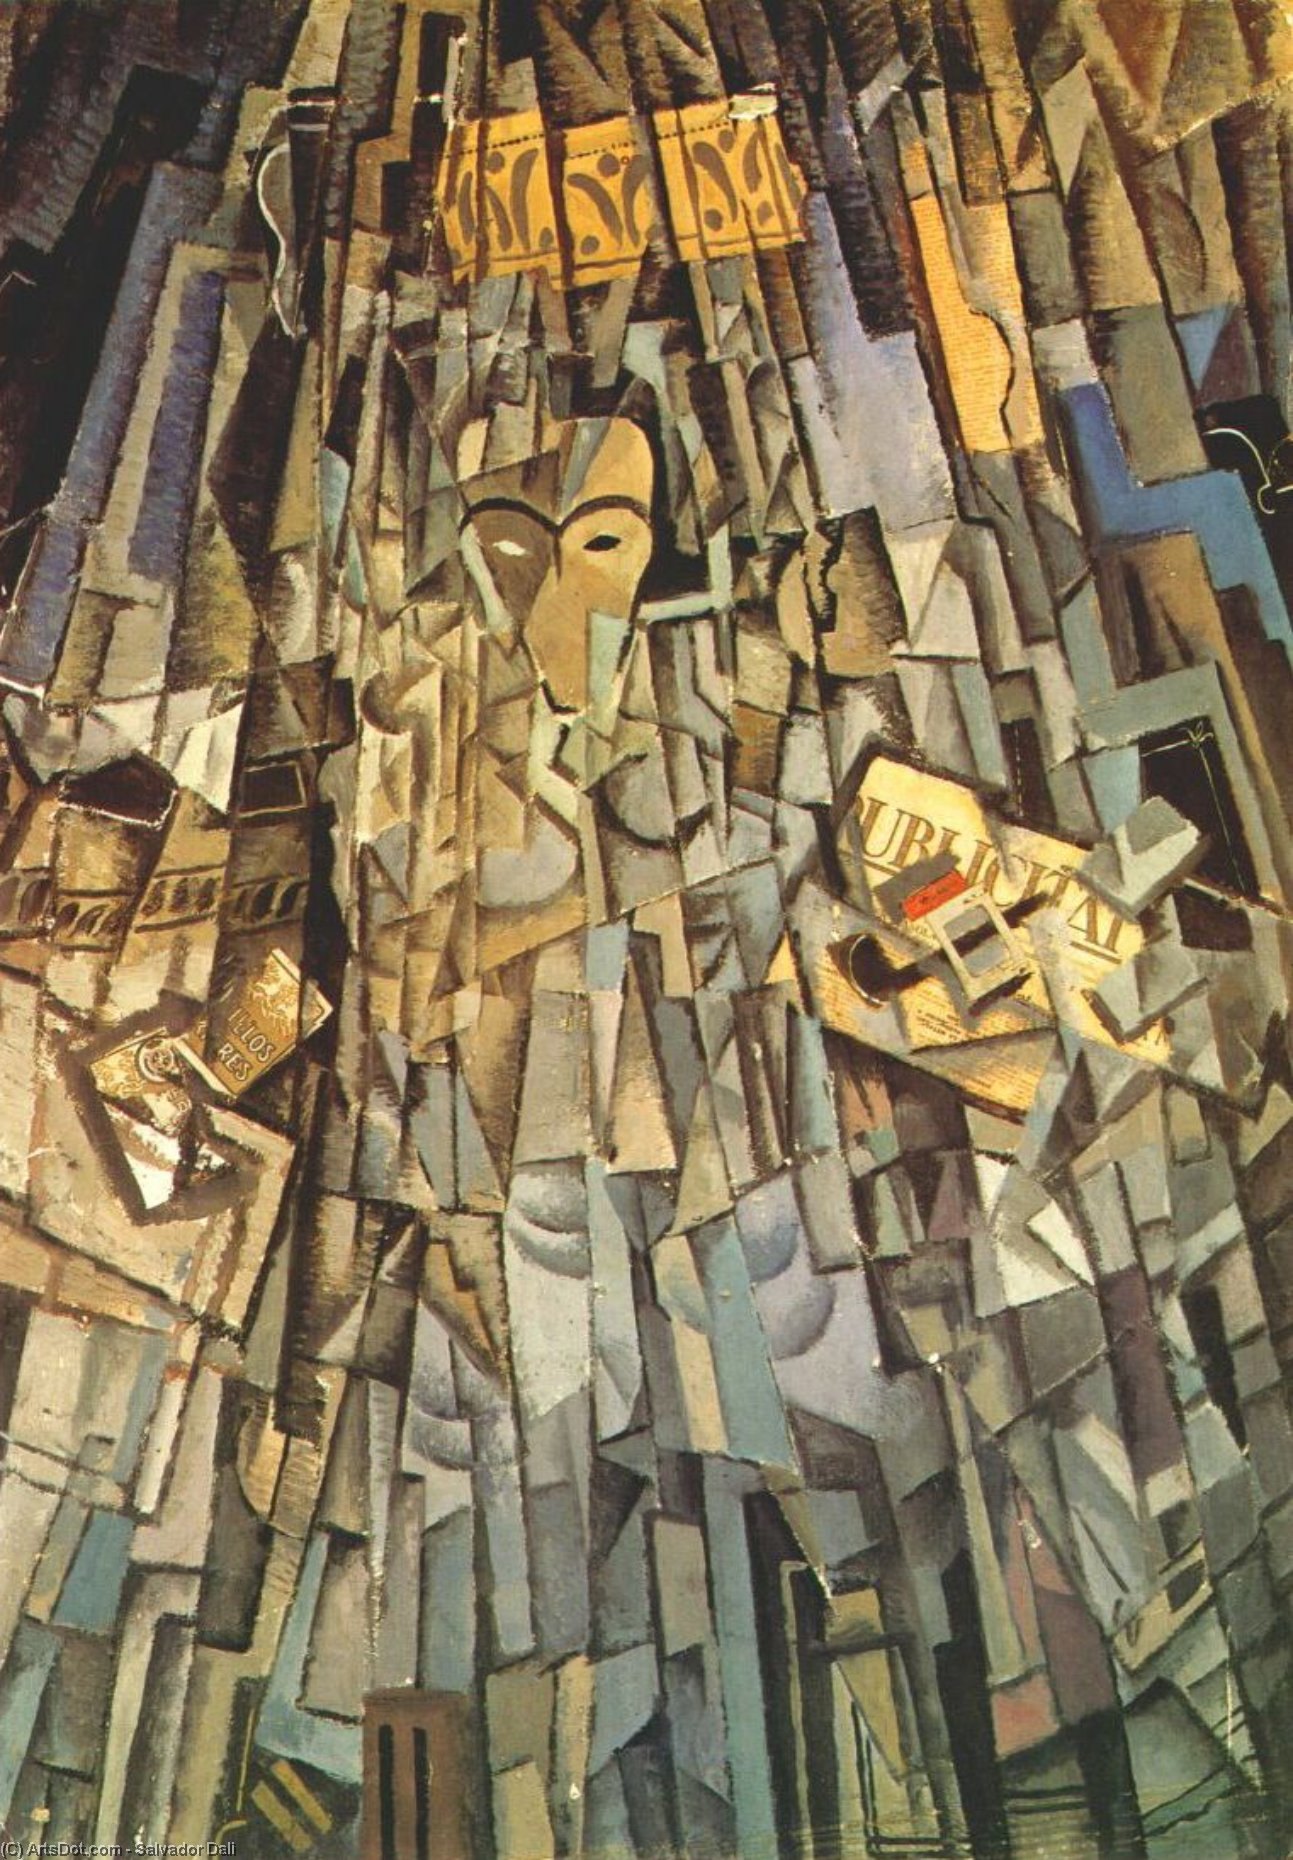 WikiOO.org - Encyclopedia of Fine Arts - Maľba, Artwork Salvador Dali - Cubist Self-portrait